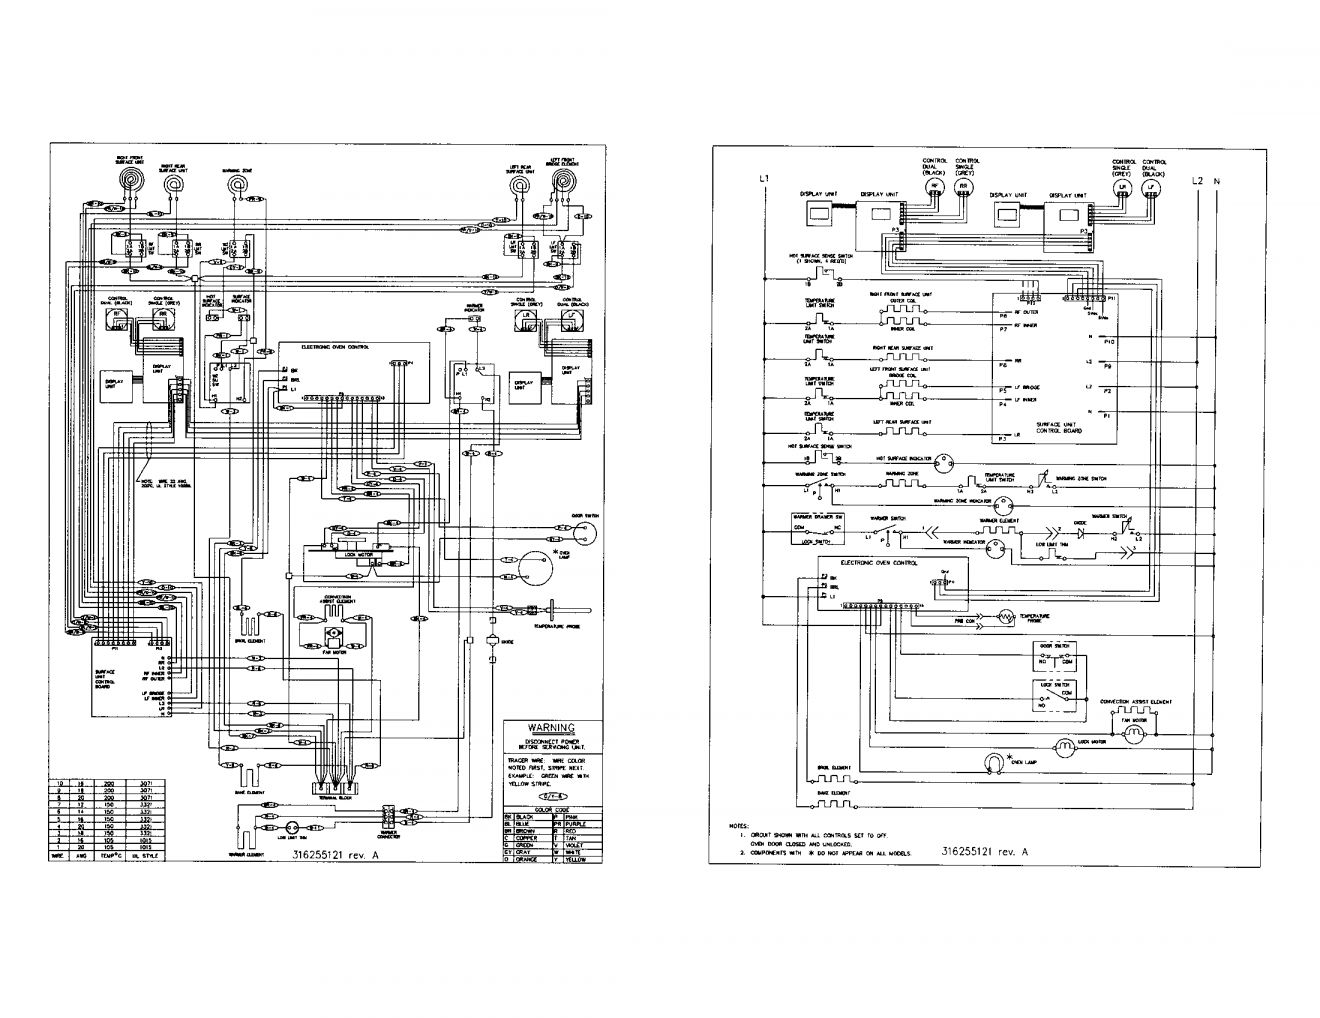 17 Frigidaire Electric Range Wiring Diagram Wiring Diagram Wiringg Net Frigidaire Kitchenaid Mixer Parts Electric Range